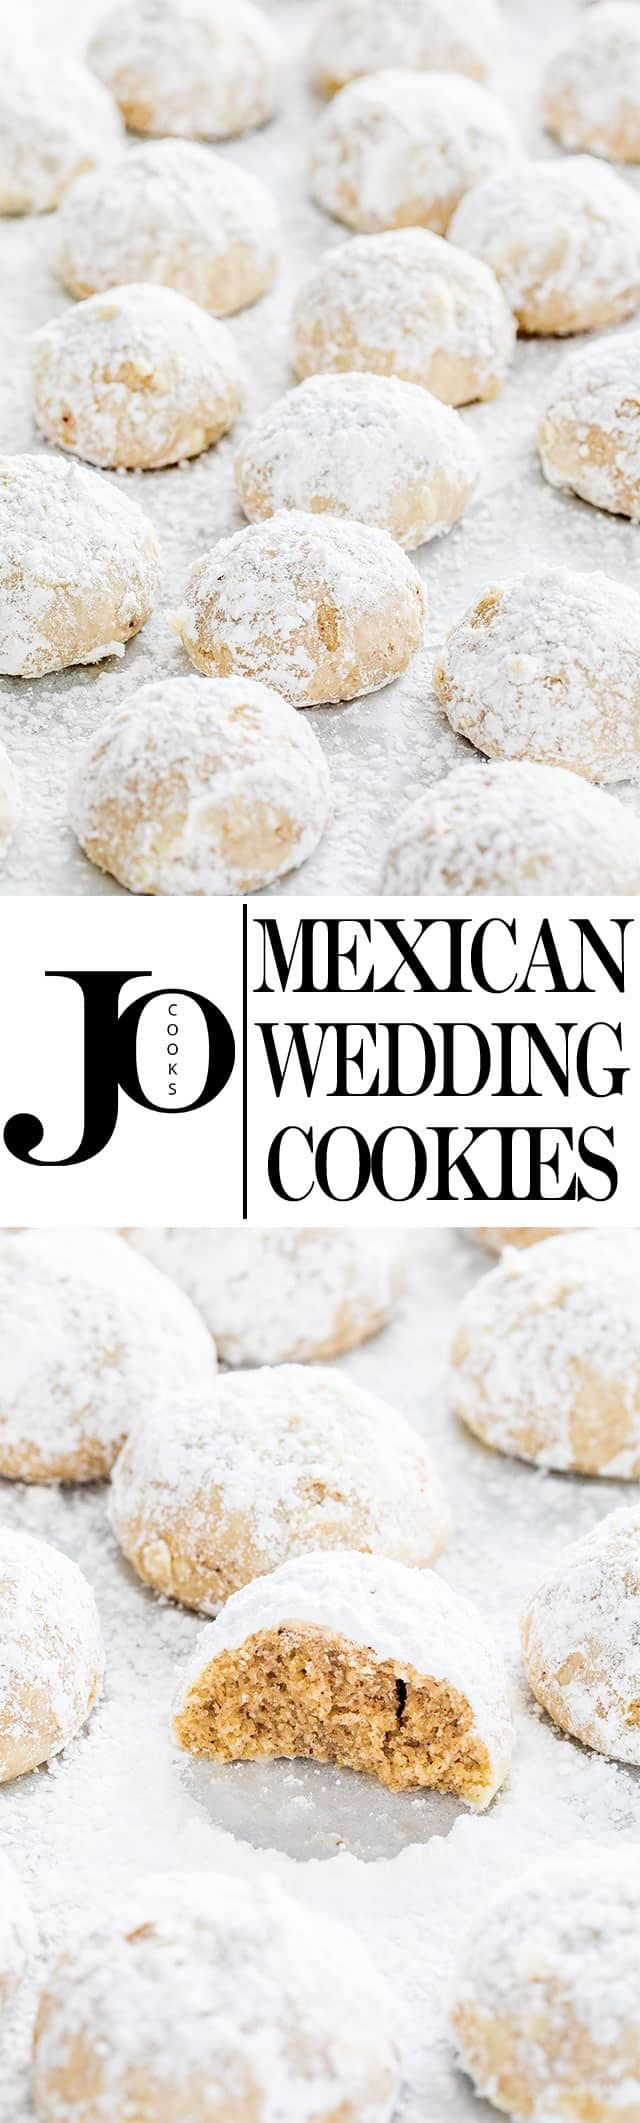 Mexican Wedding Cookies don't get fooled by the name